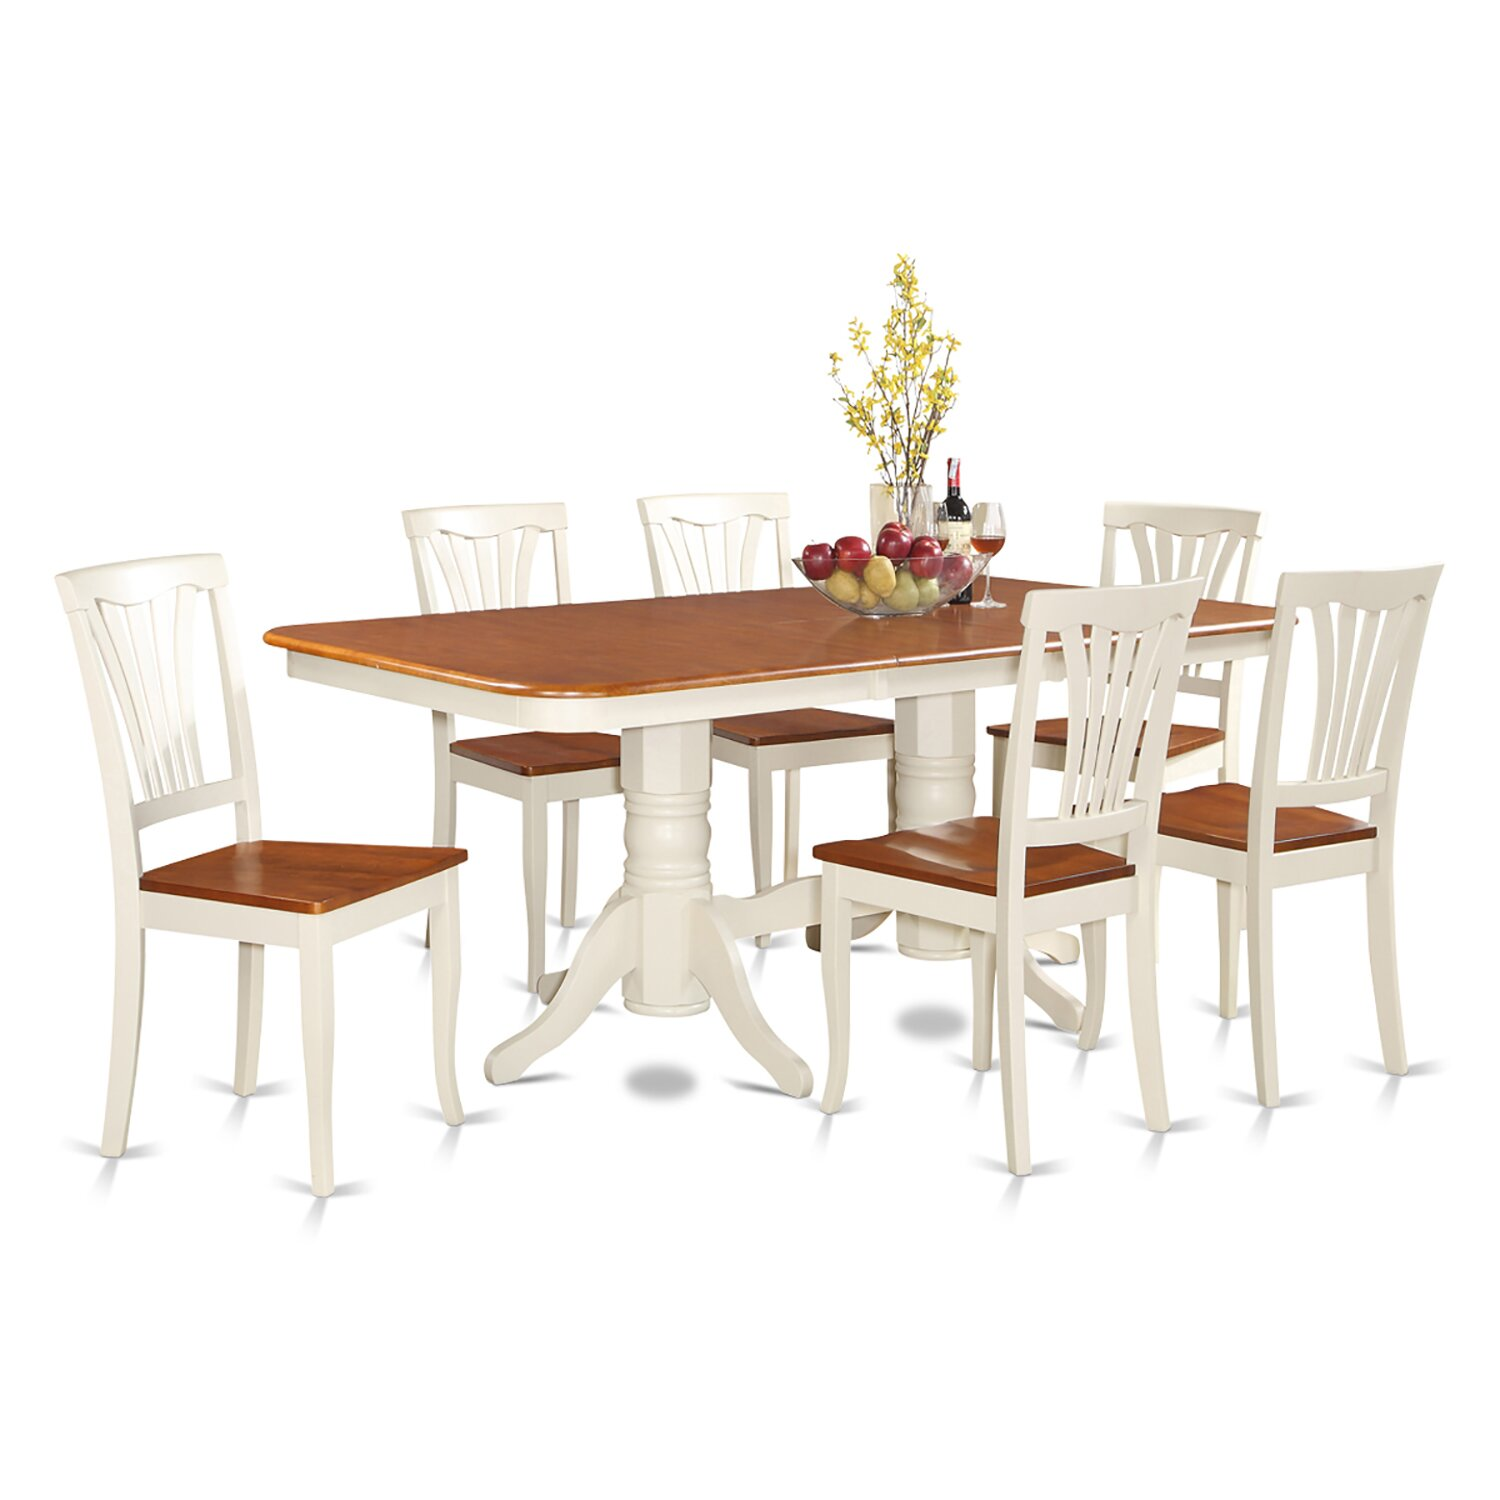 Wooden importers napoleon 7 piece dining set reviews for Dining room table replacement leaf